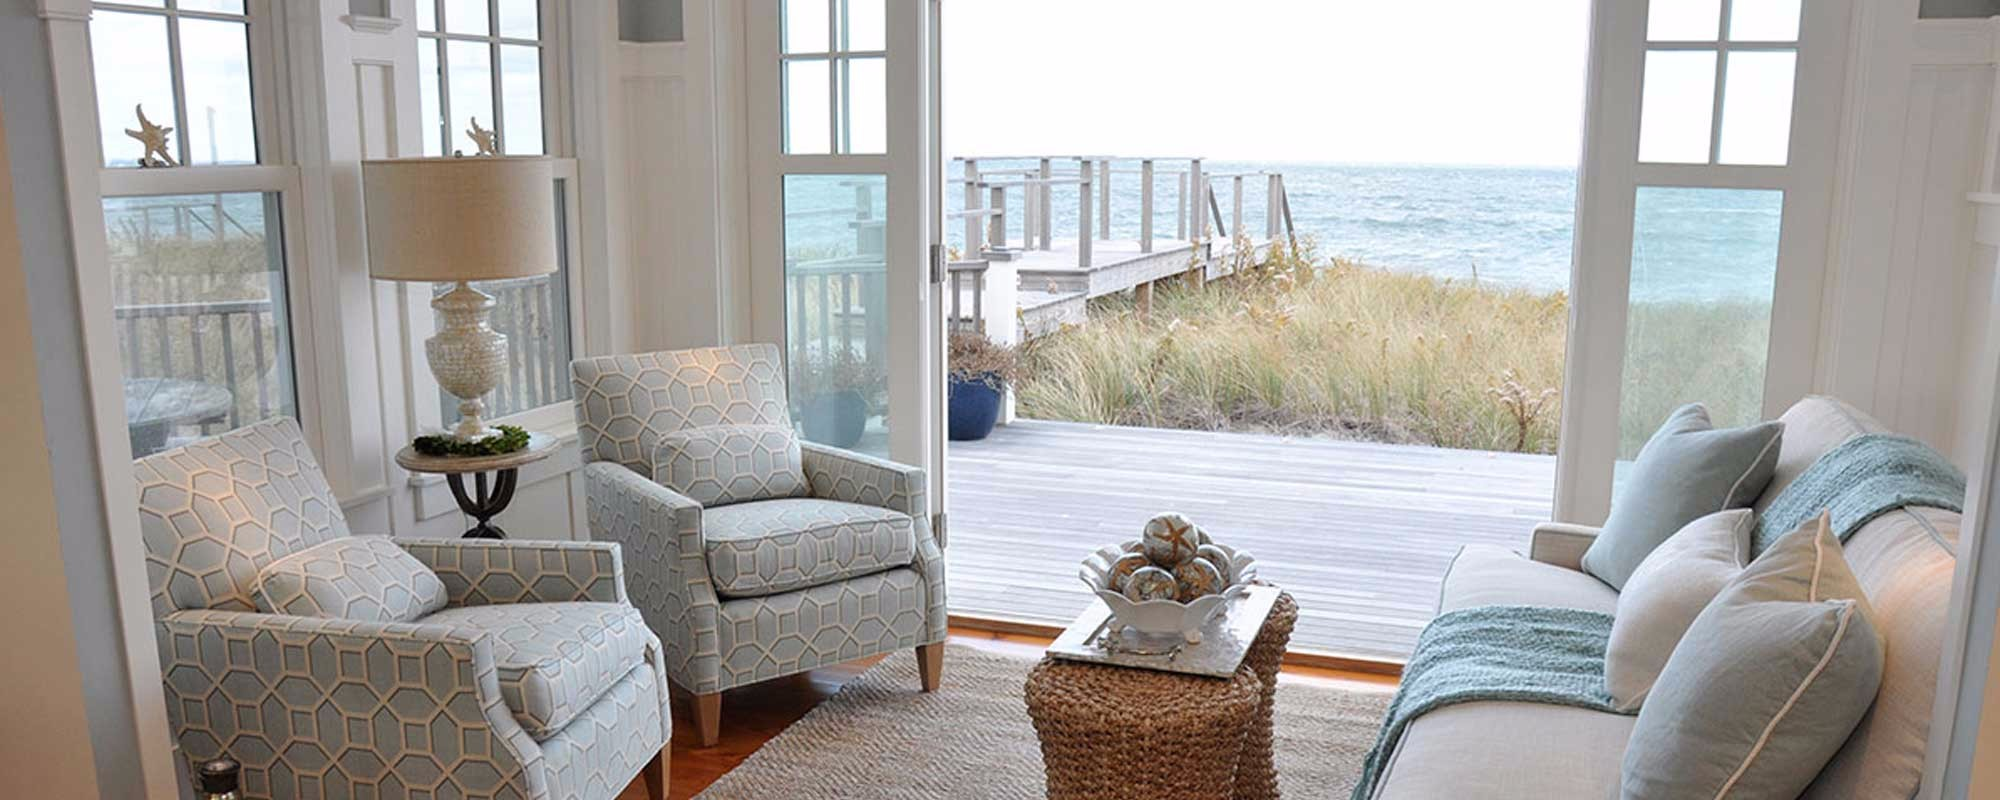 Interior design cape cod ma casabella interiors - Enterear design ...